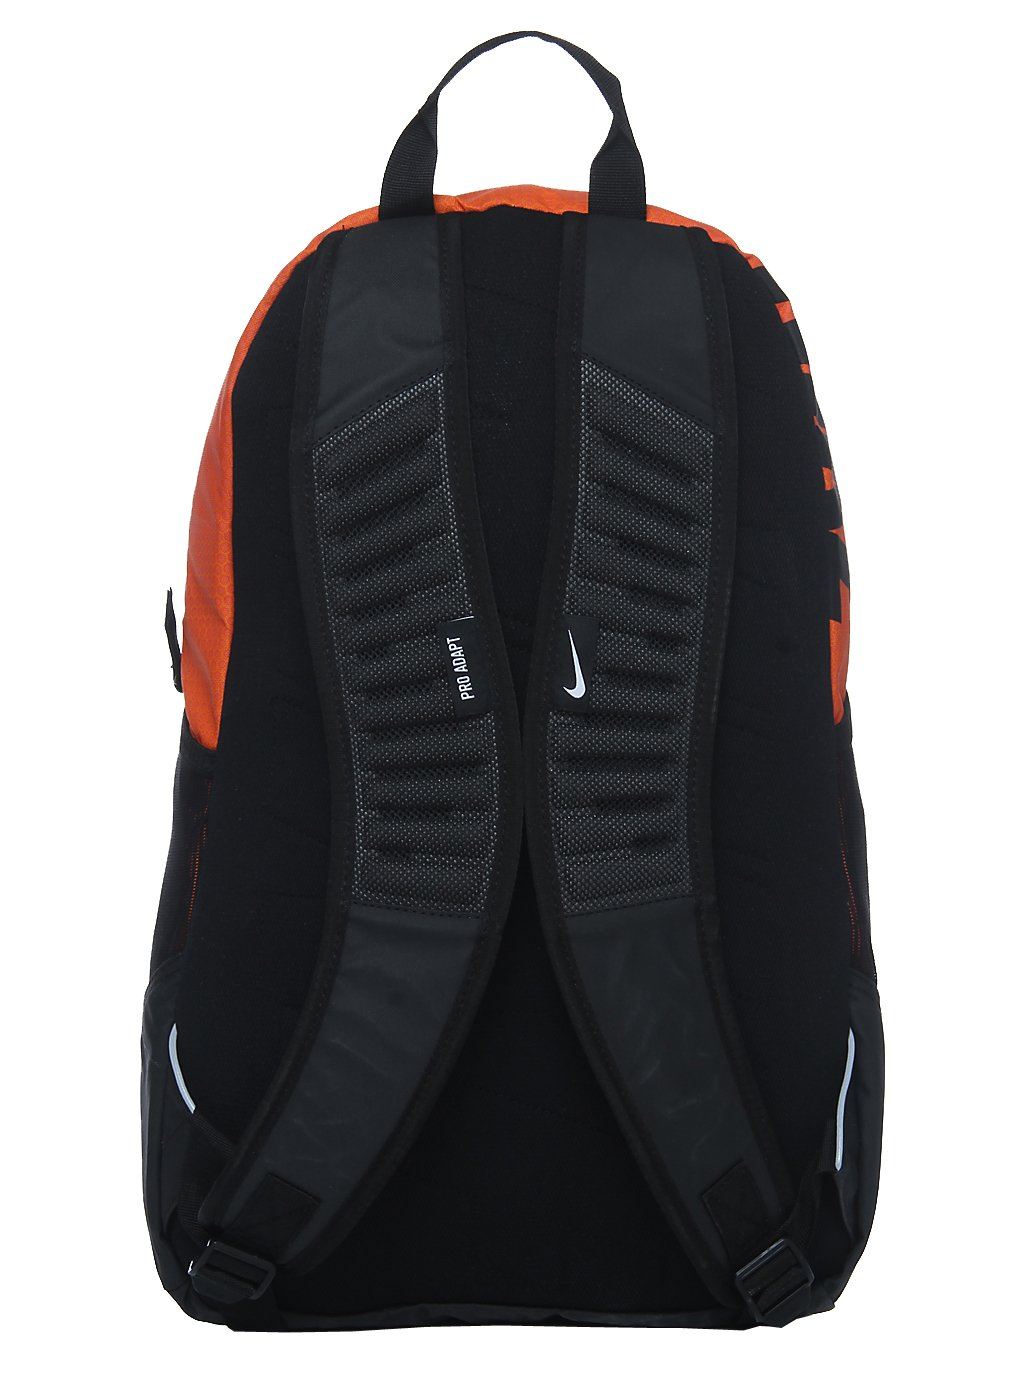 29edd2ccb744 Orange Nike Mesh Backpack- Fenix Toulouse Handball